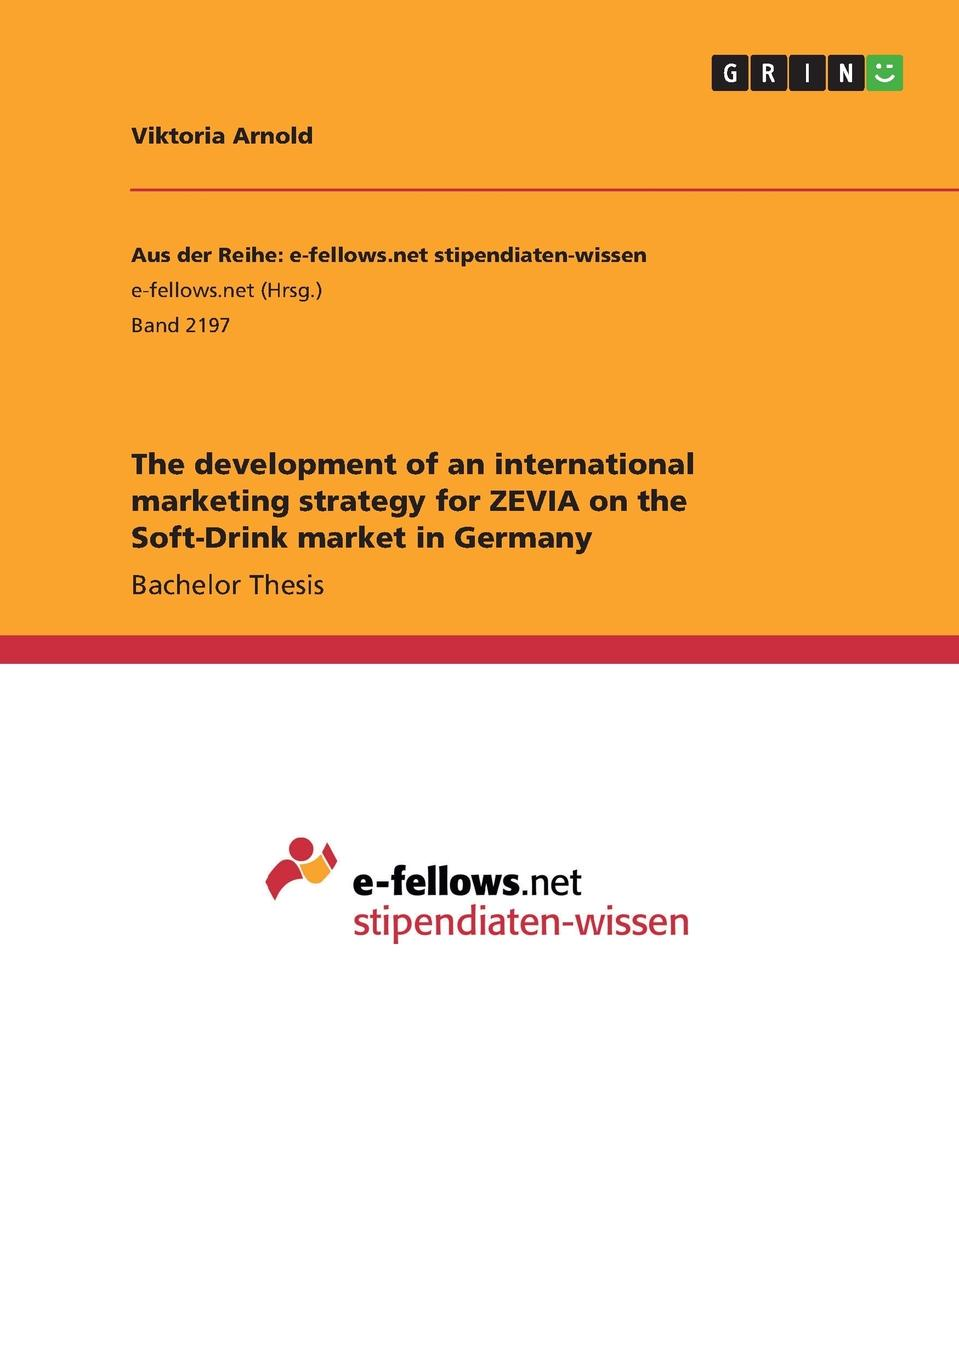 Viktoria Arnold The development of an international marketing strategy for ZEVIA on the Soft-Drink market in Germany